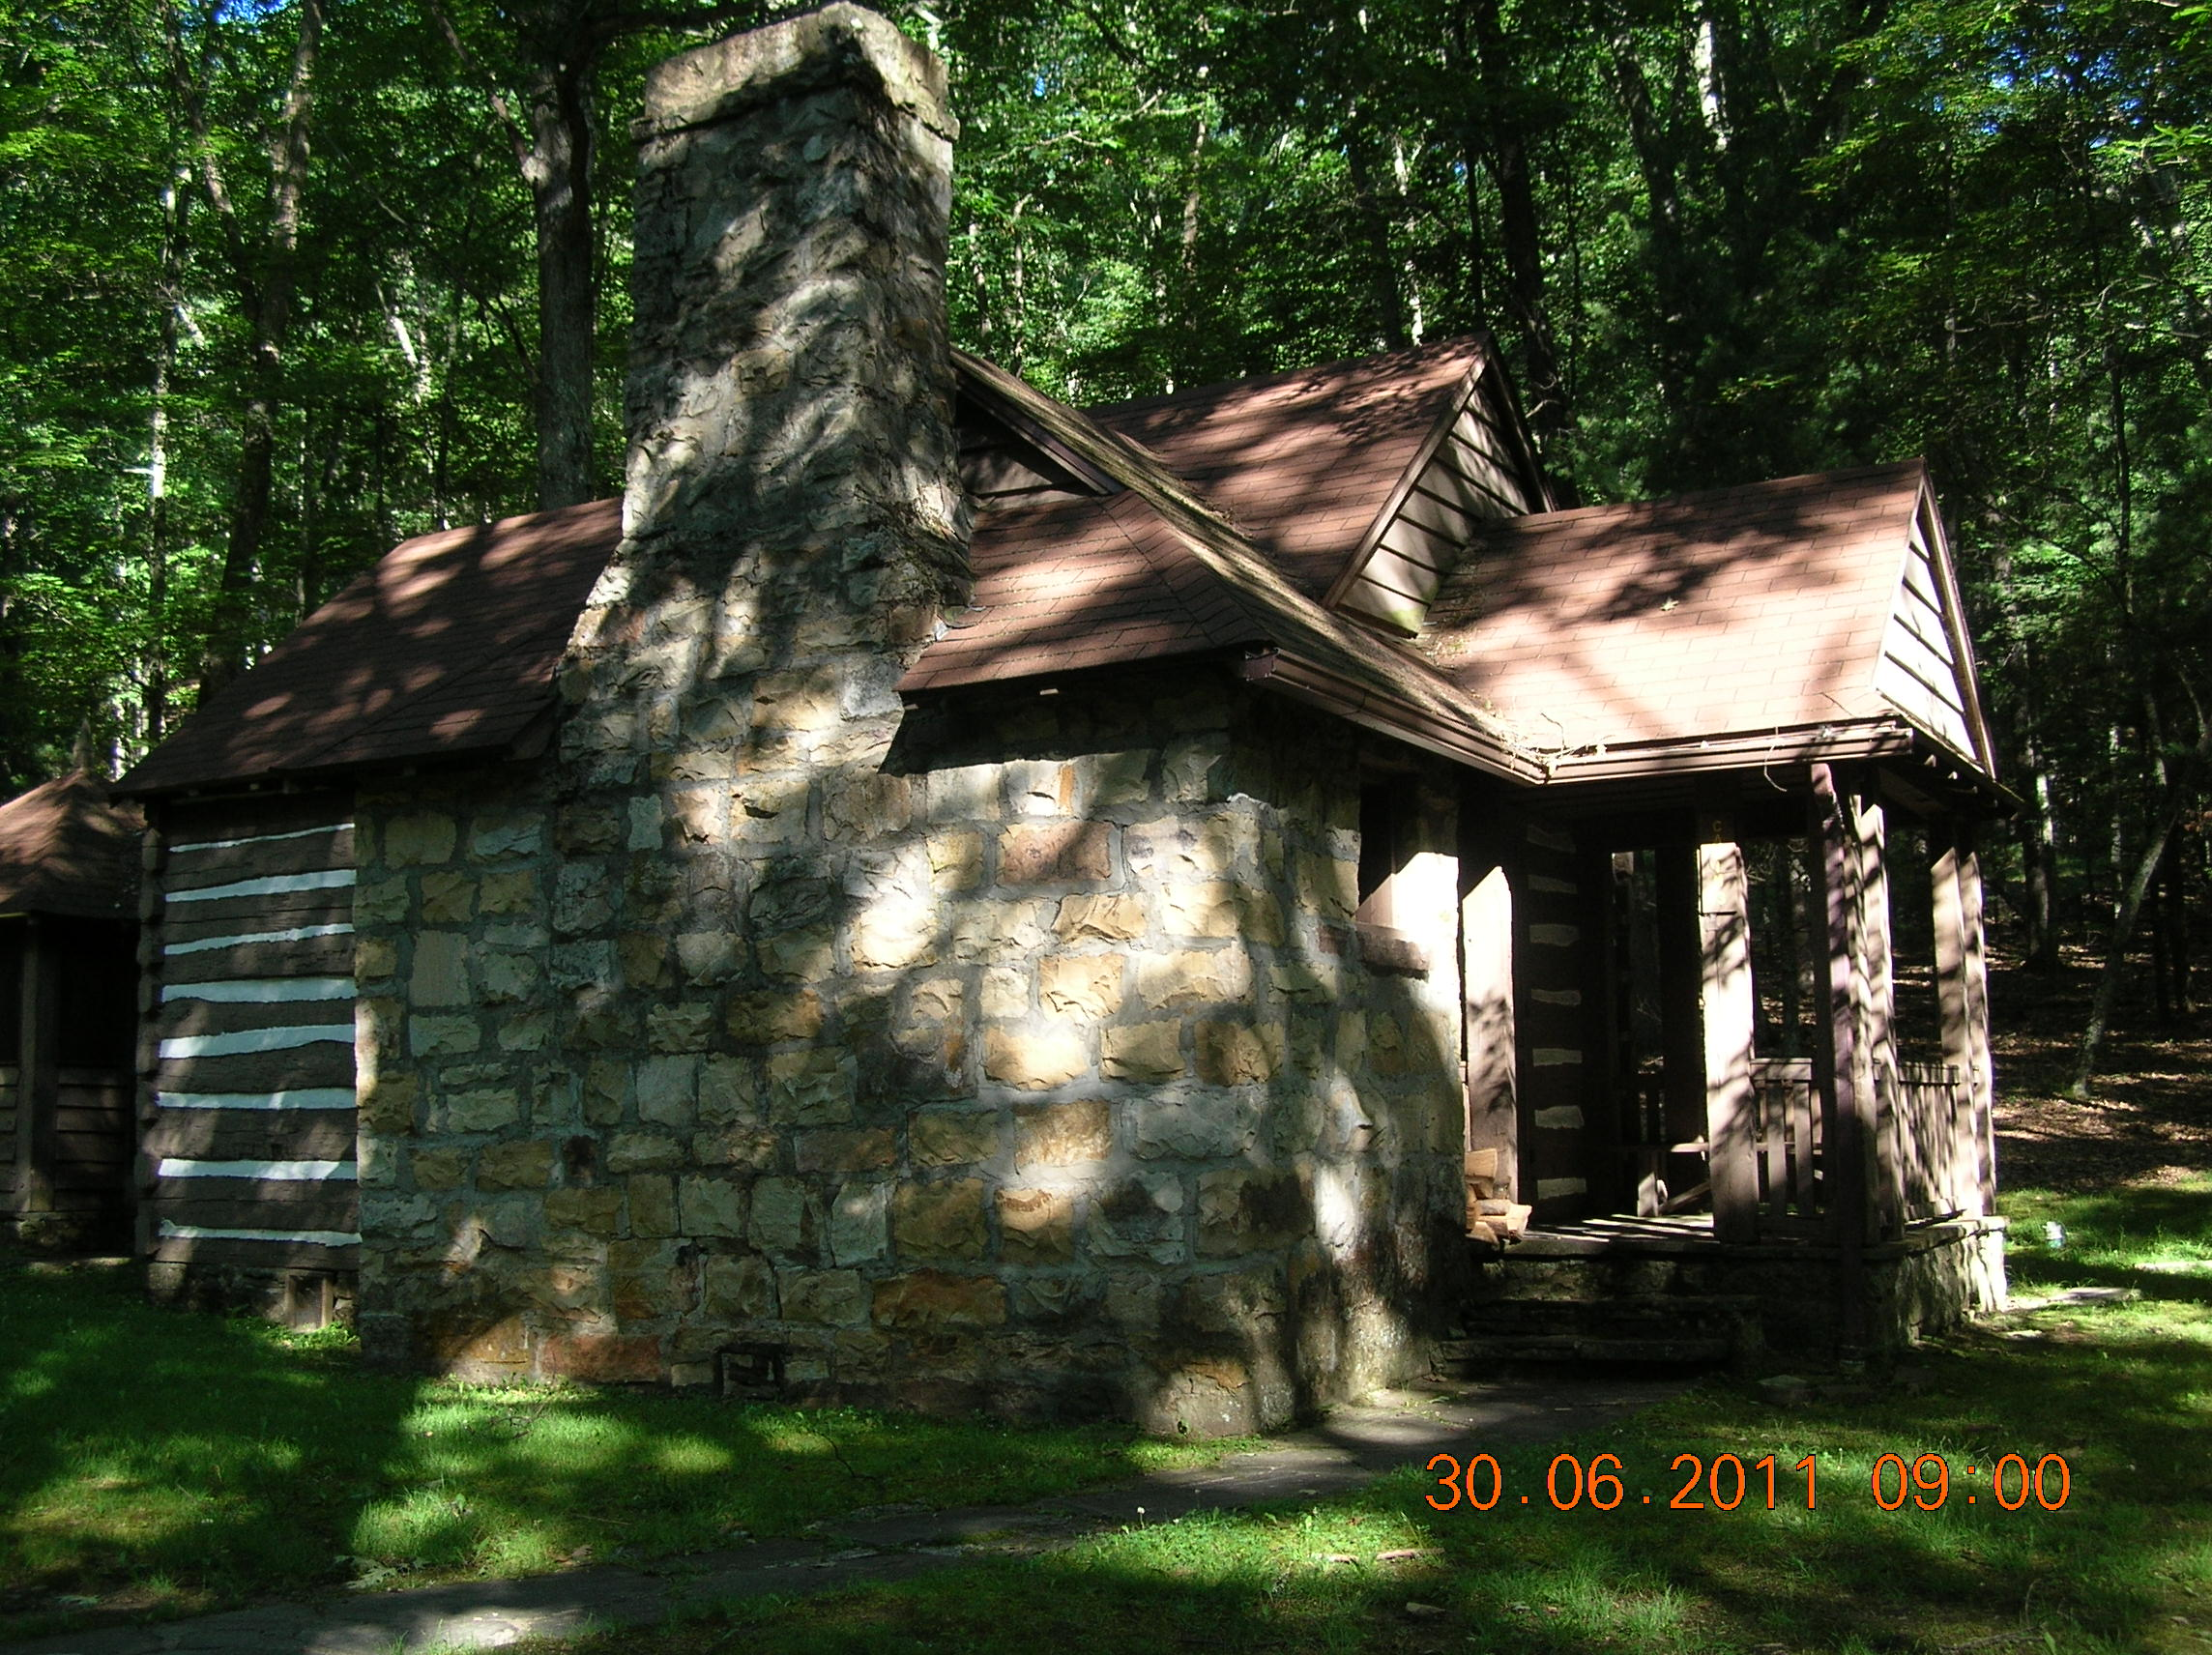 of lee wv lost rain west the in haunting virginia at river cabins cabin family park state